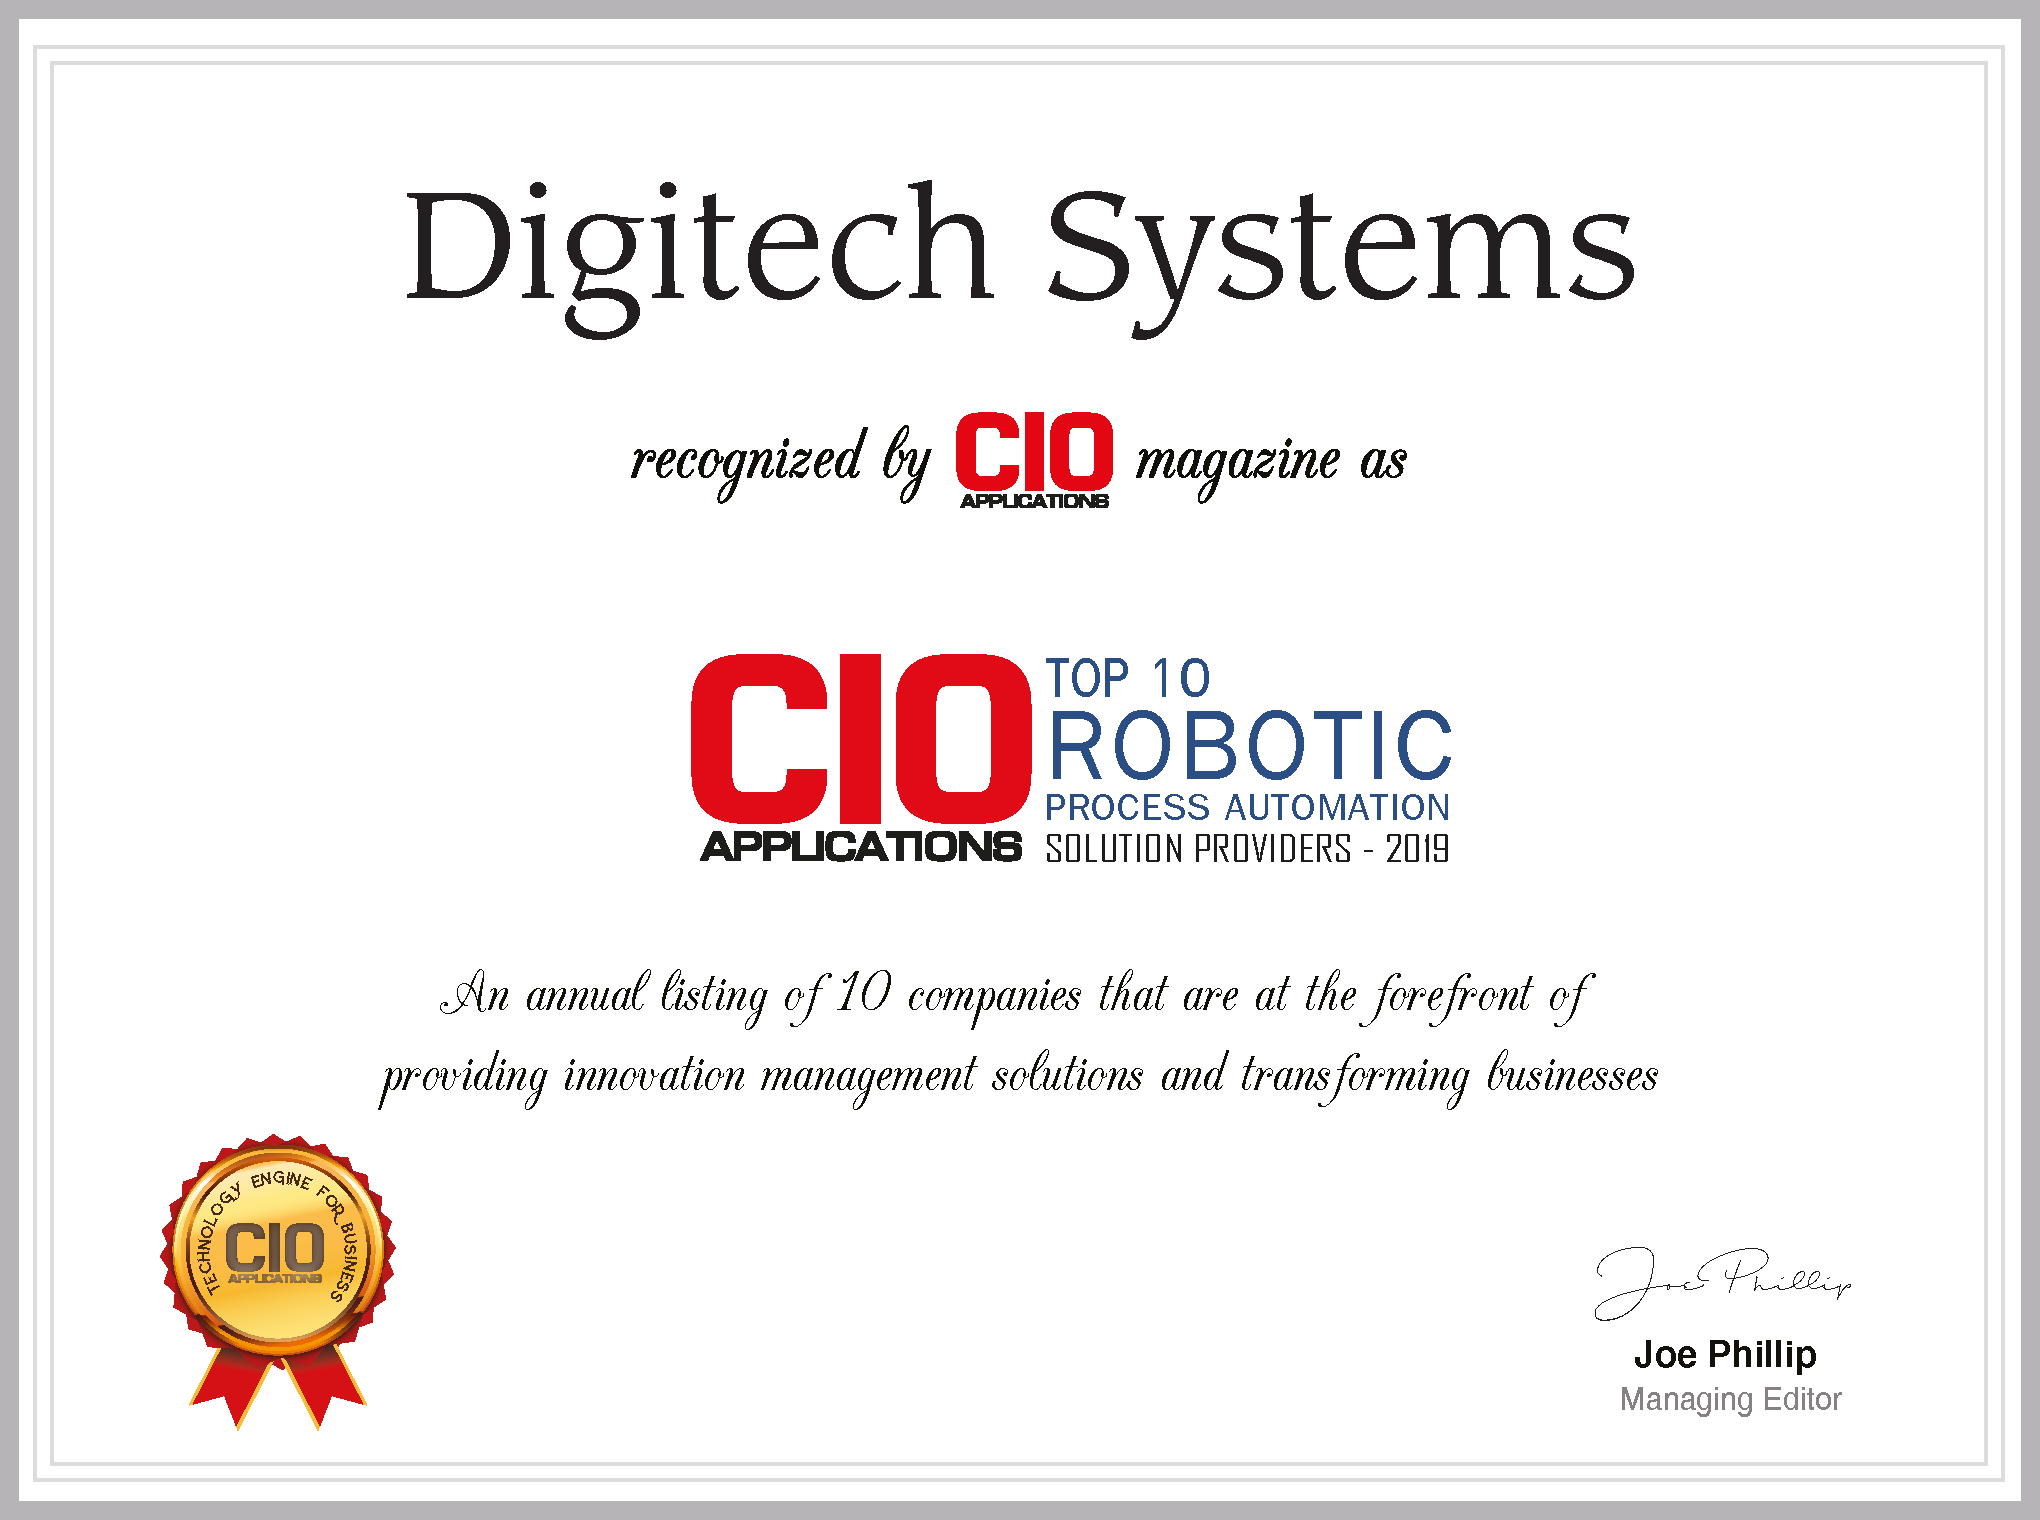 CIO-Applications-award-logo